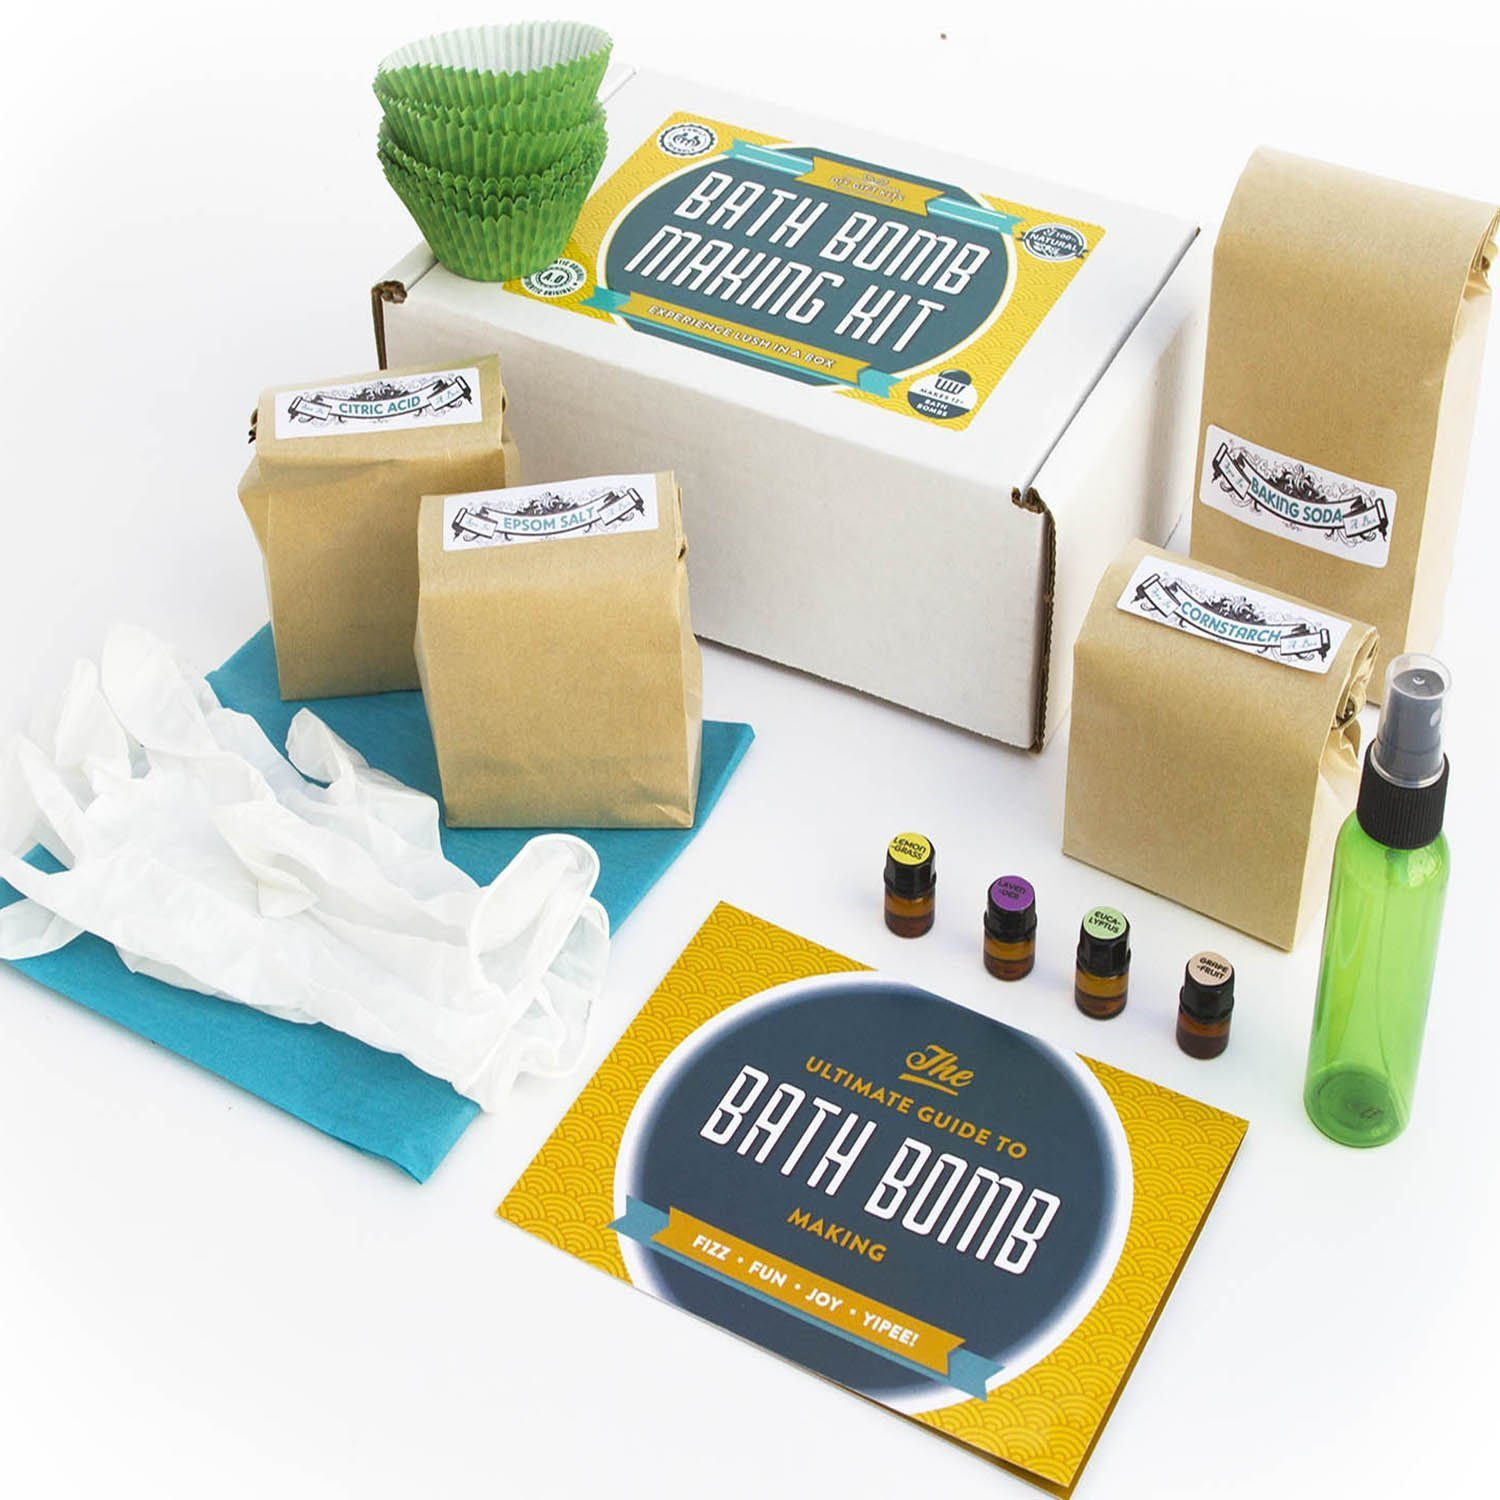 Bath Bomb Making Kit with 100% Pure Therapeutic Grade Essential Oils, (Makes 12 DIY Lush Cupcake Mold Bath Bombs), Gift Box Included.